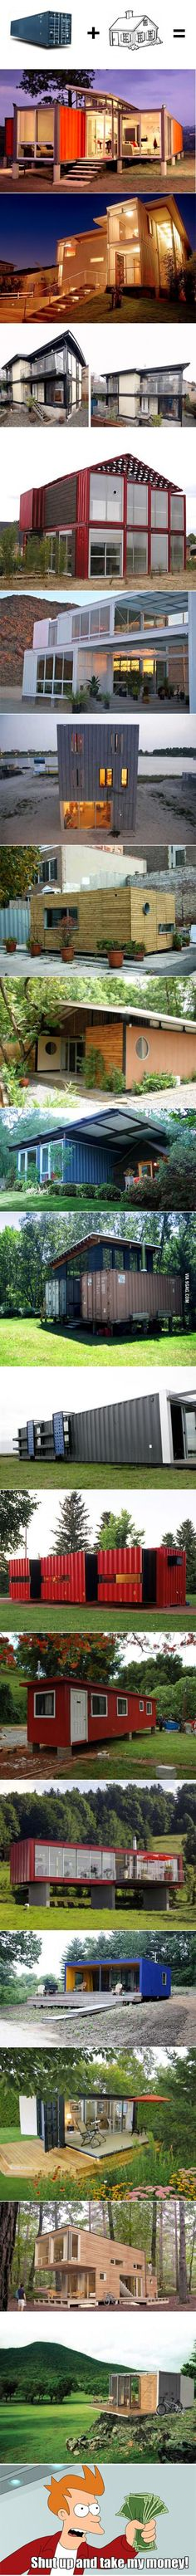 9GAG - Container Homes: so cool!